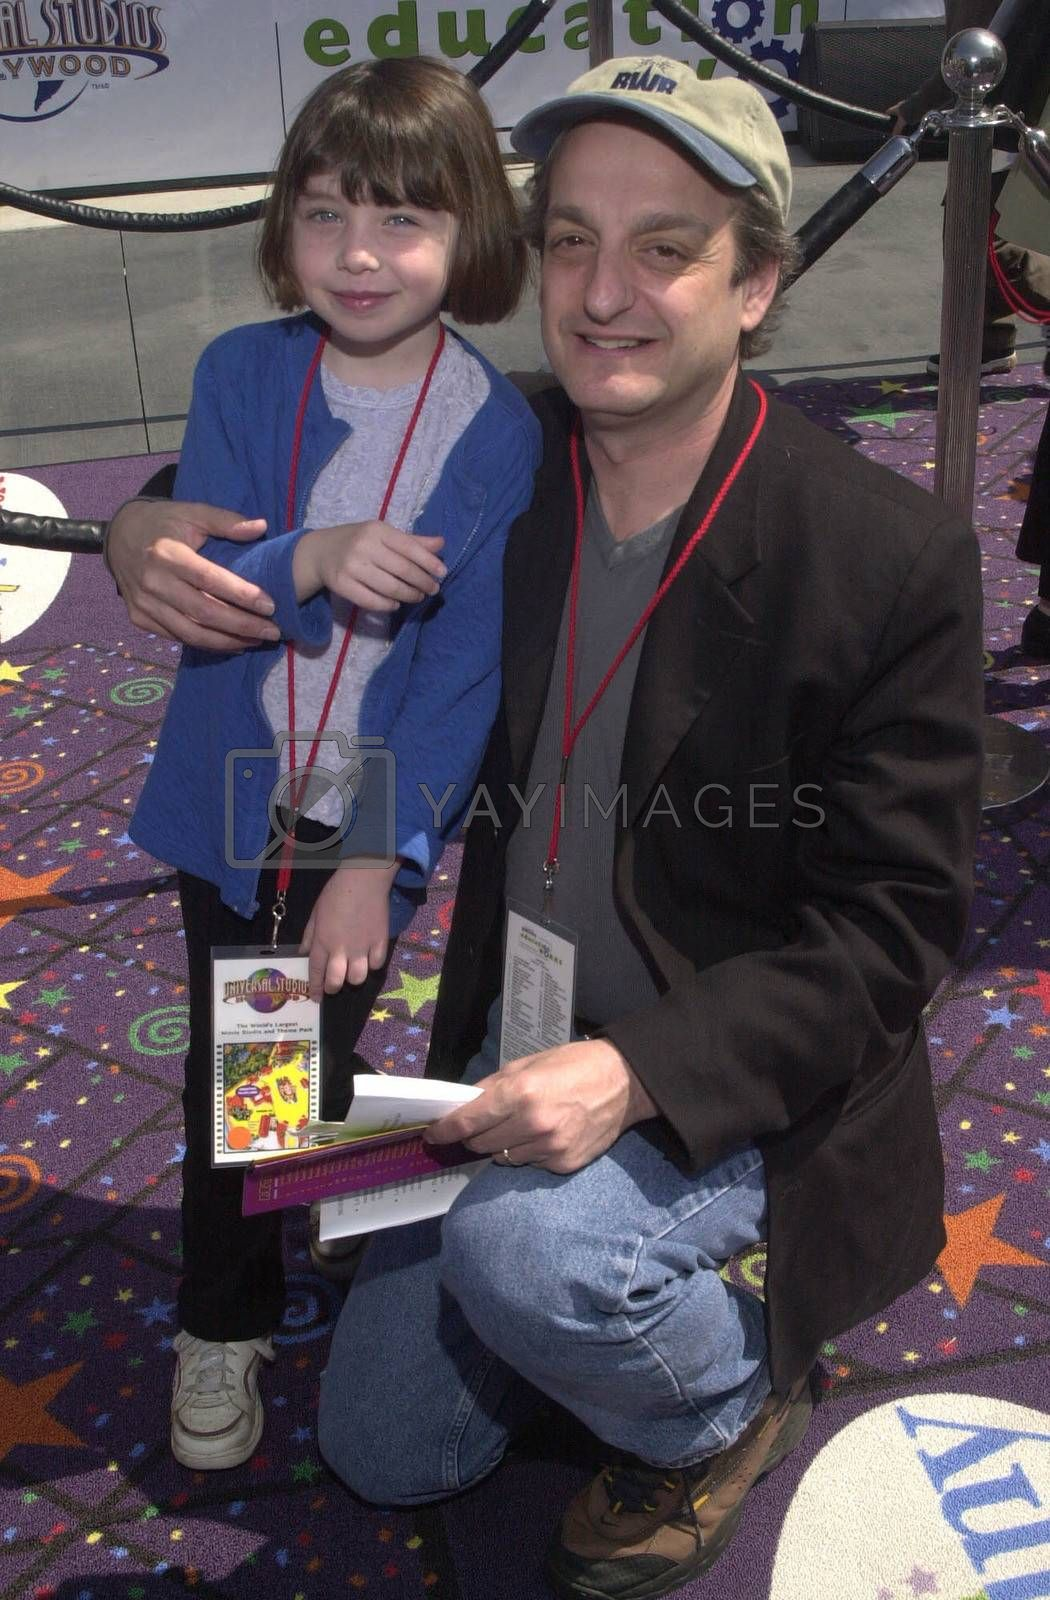 David Paymer and Daughter at the Education Works benefit to promote after-school activities, Universal Studios Hollywood, 03-25-00